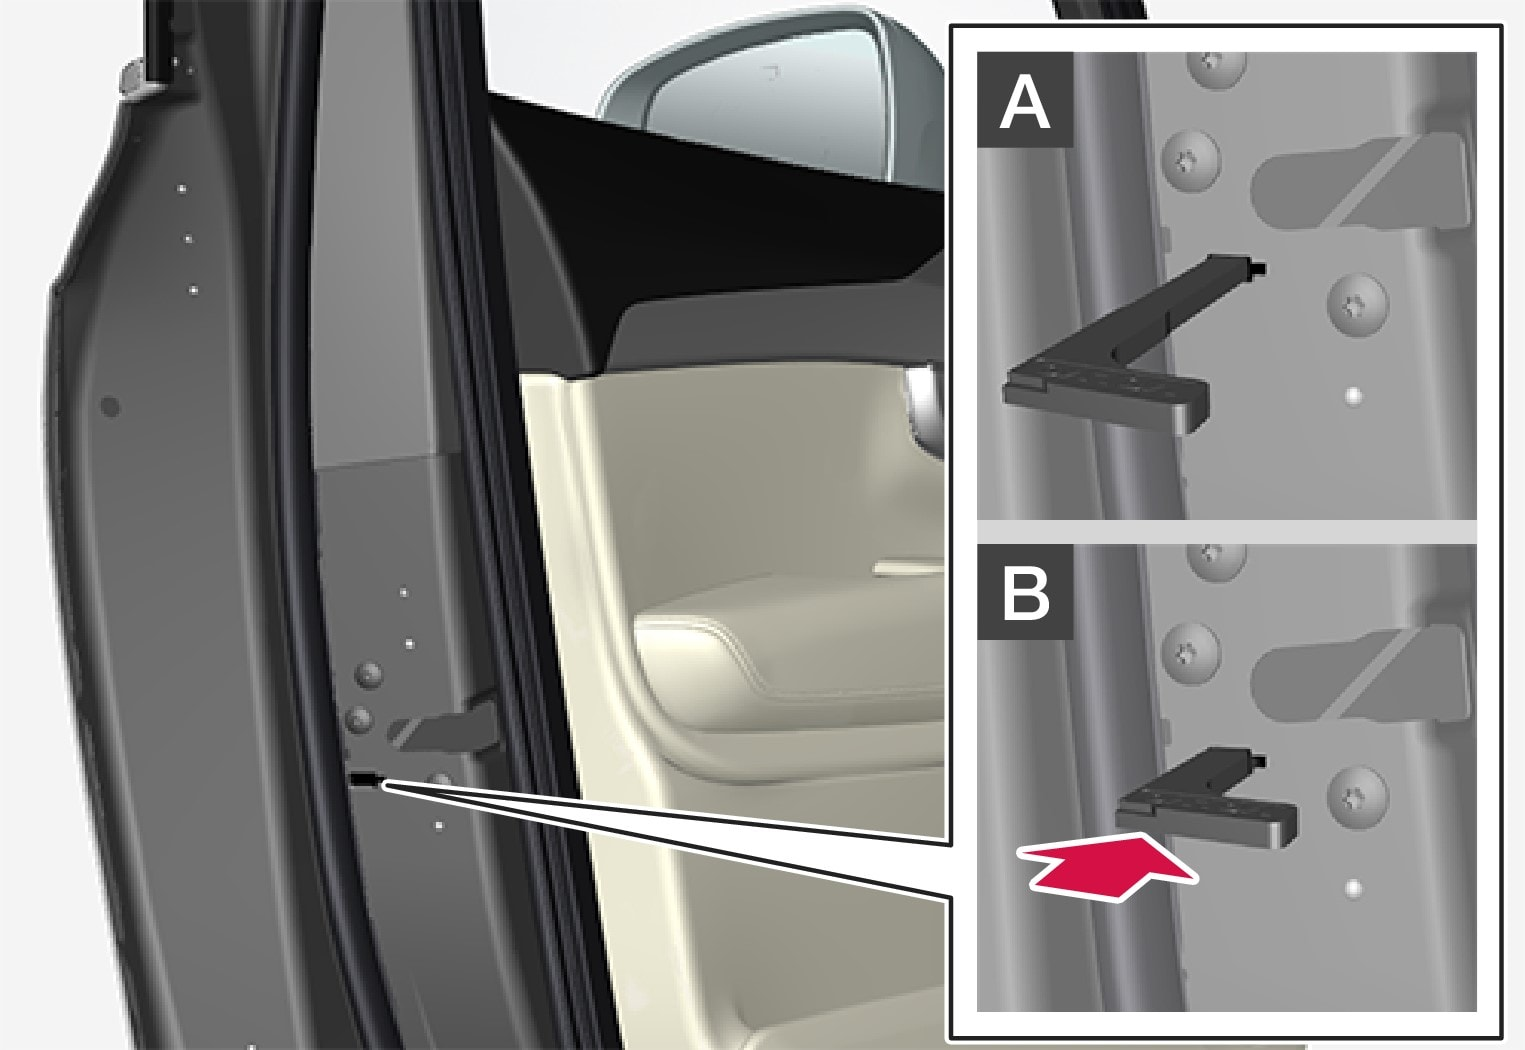 P5-1507-XC90- Manual locking